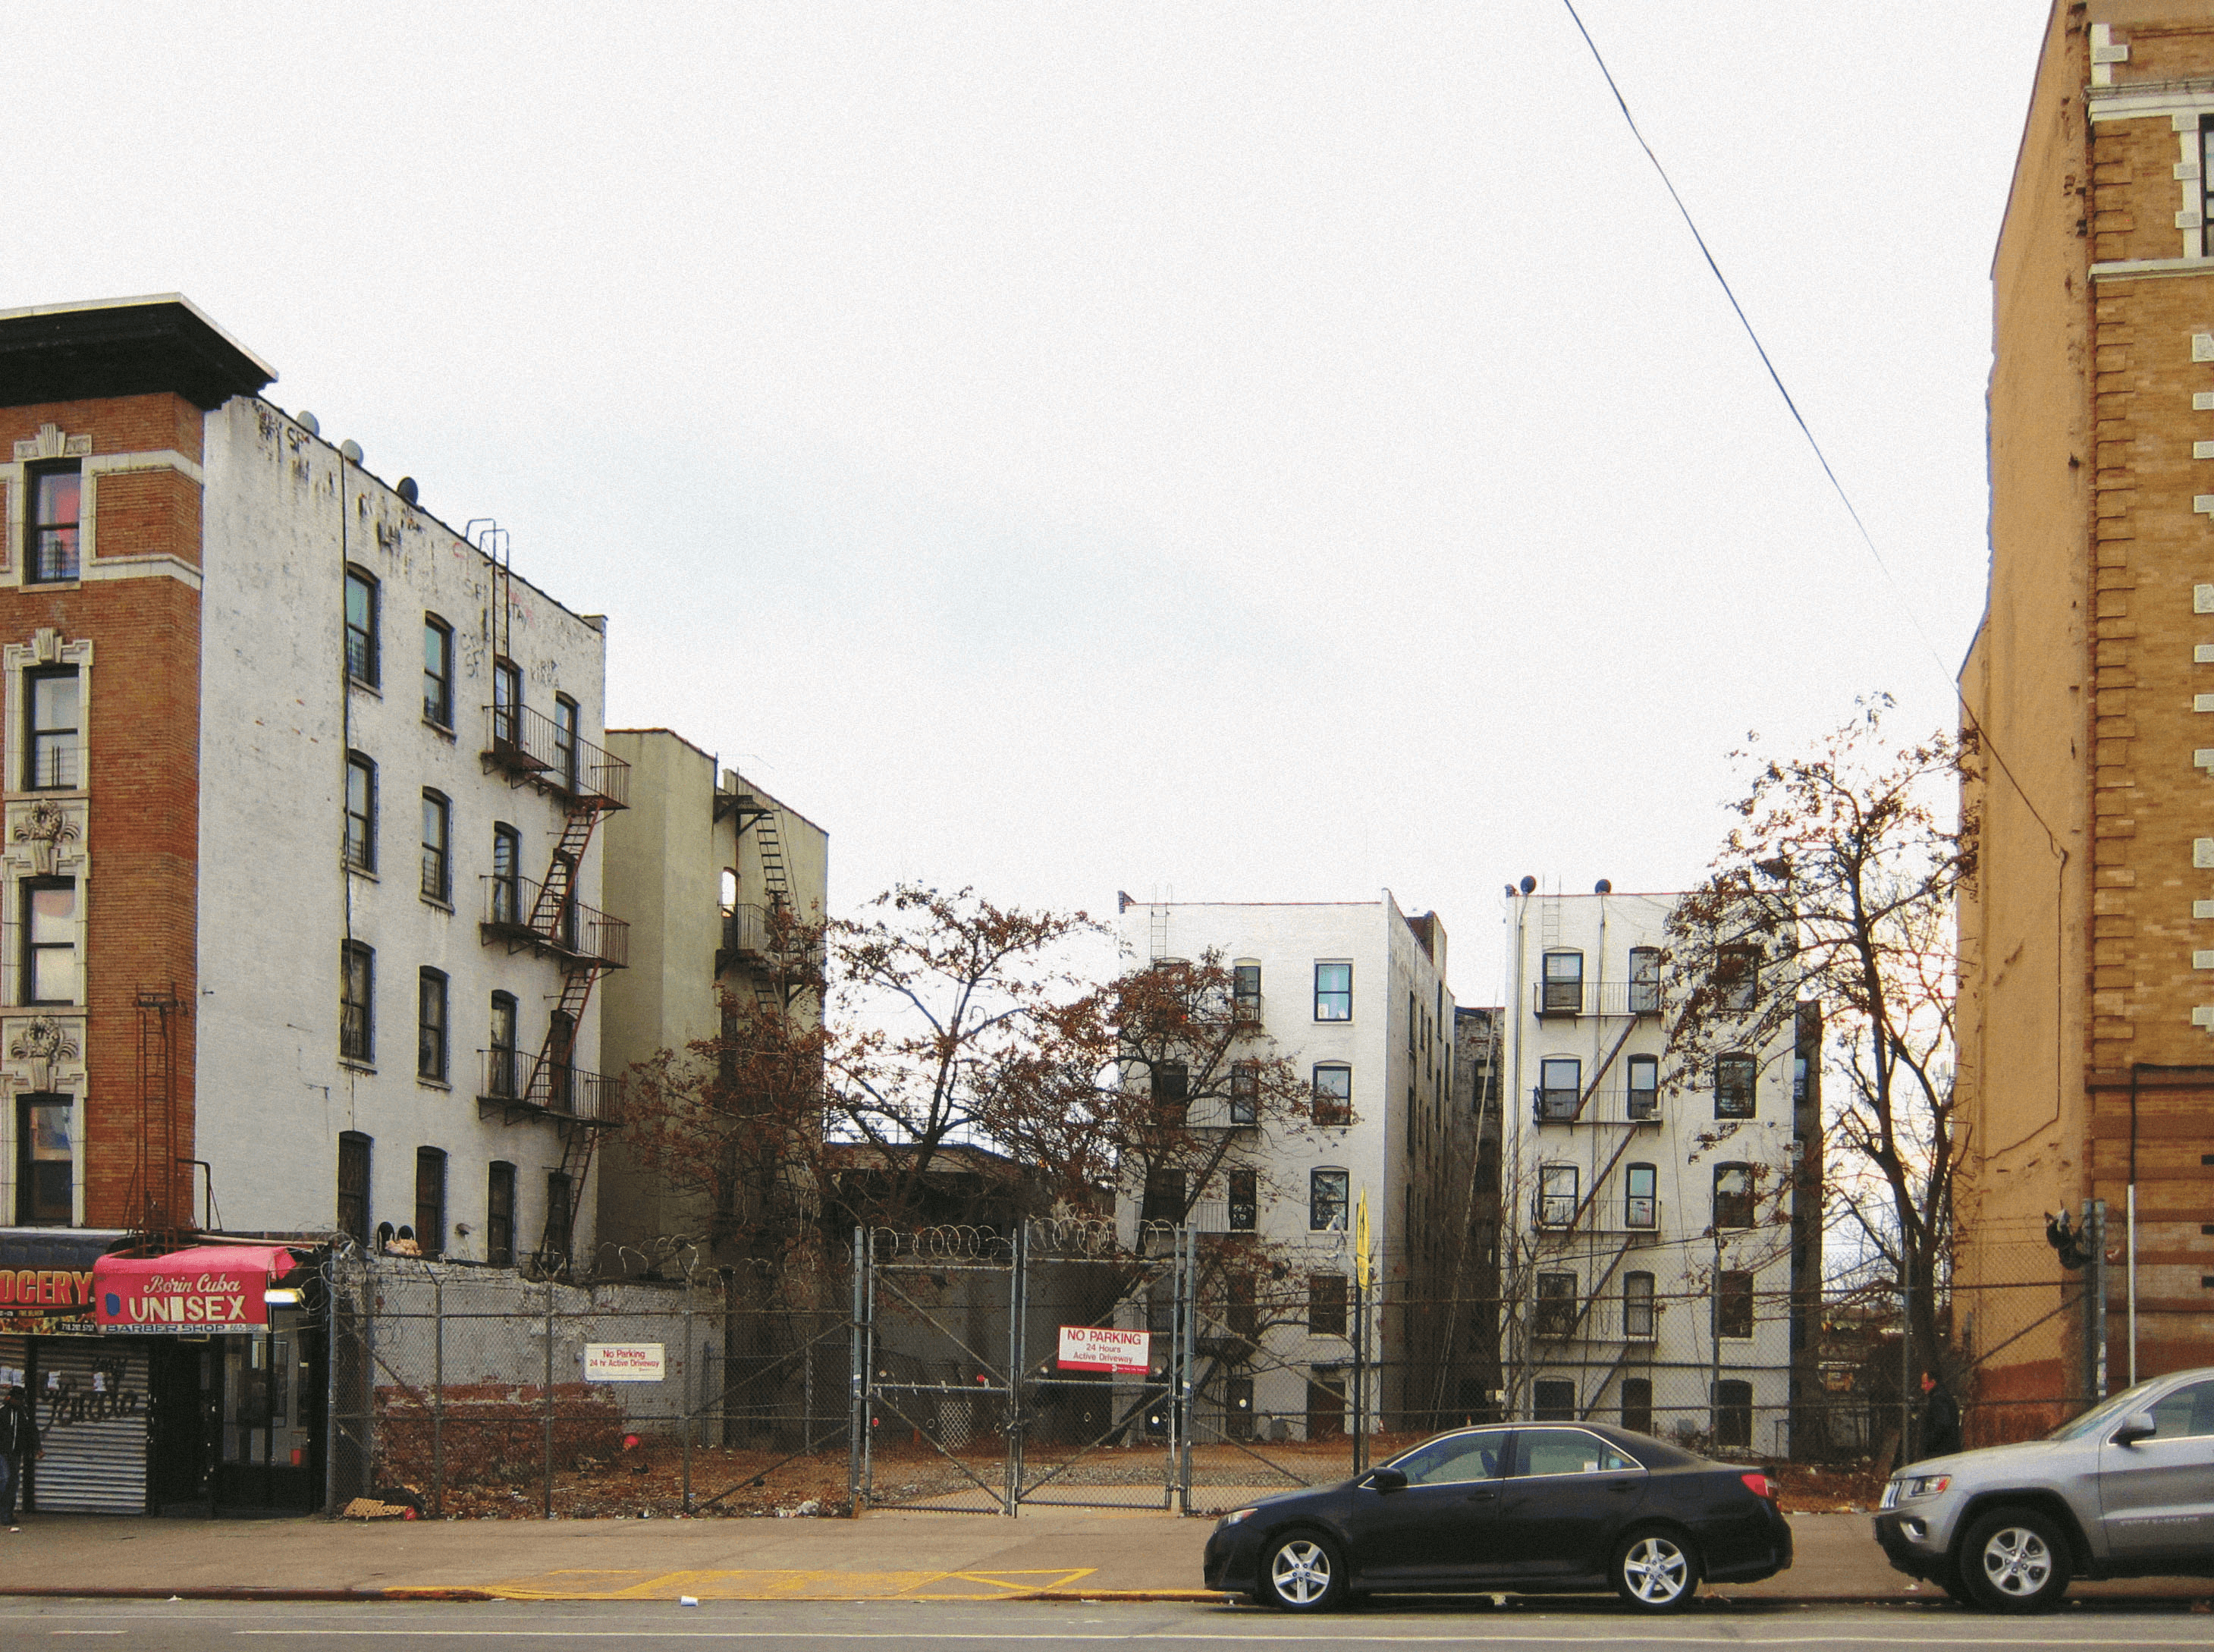 Photograph of a vacant lot the MTA owns that could be used for development